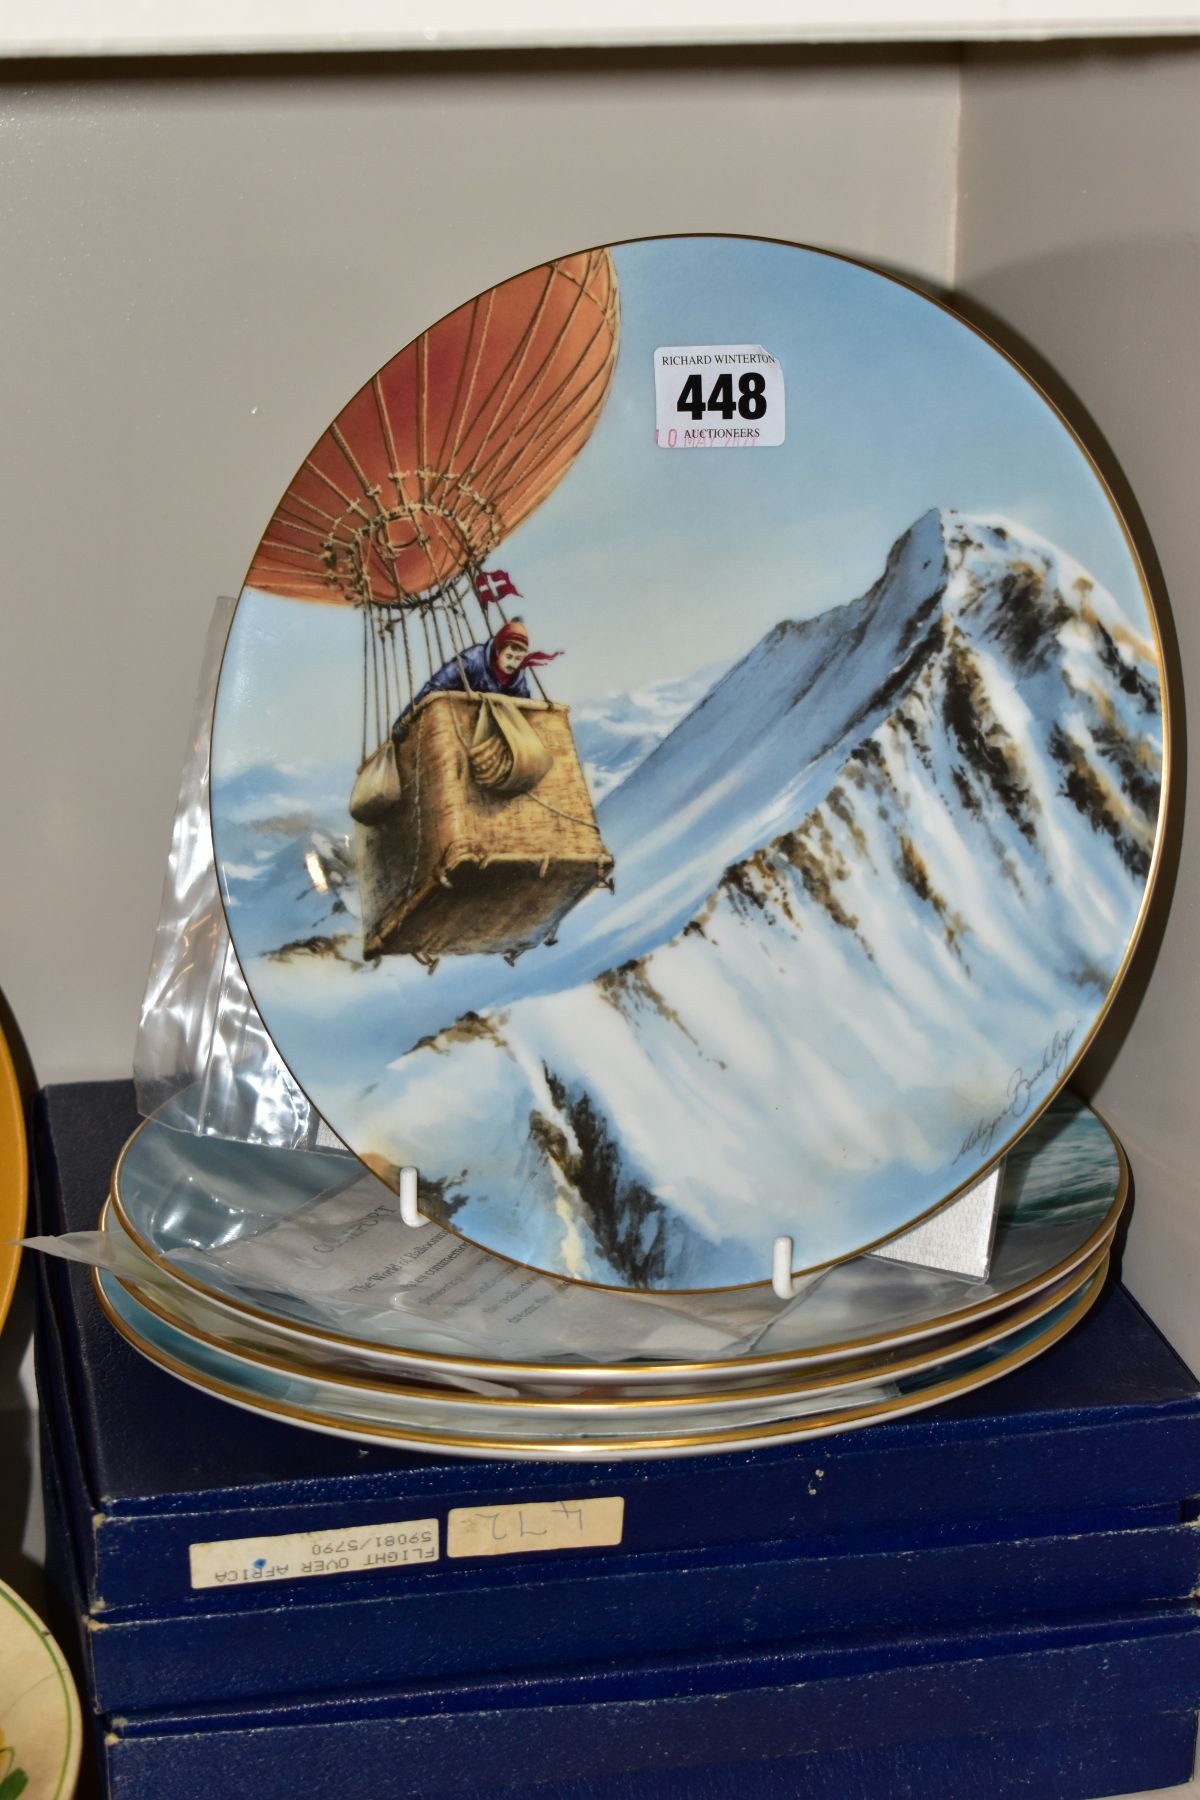 A SET OF FOUR BOXED COALPORT LIMITED EDITION COALPORT CABINET PLATES, from 'World of Ballooning - Image 2 of 5